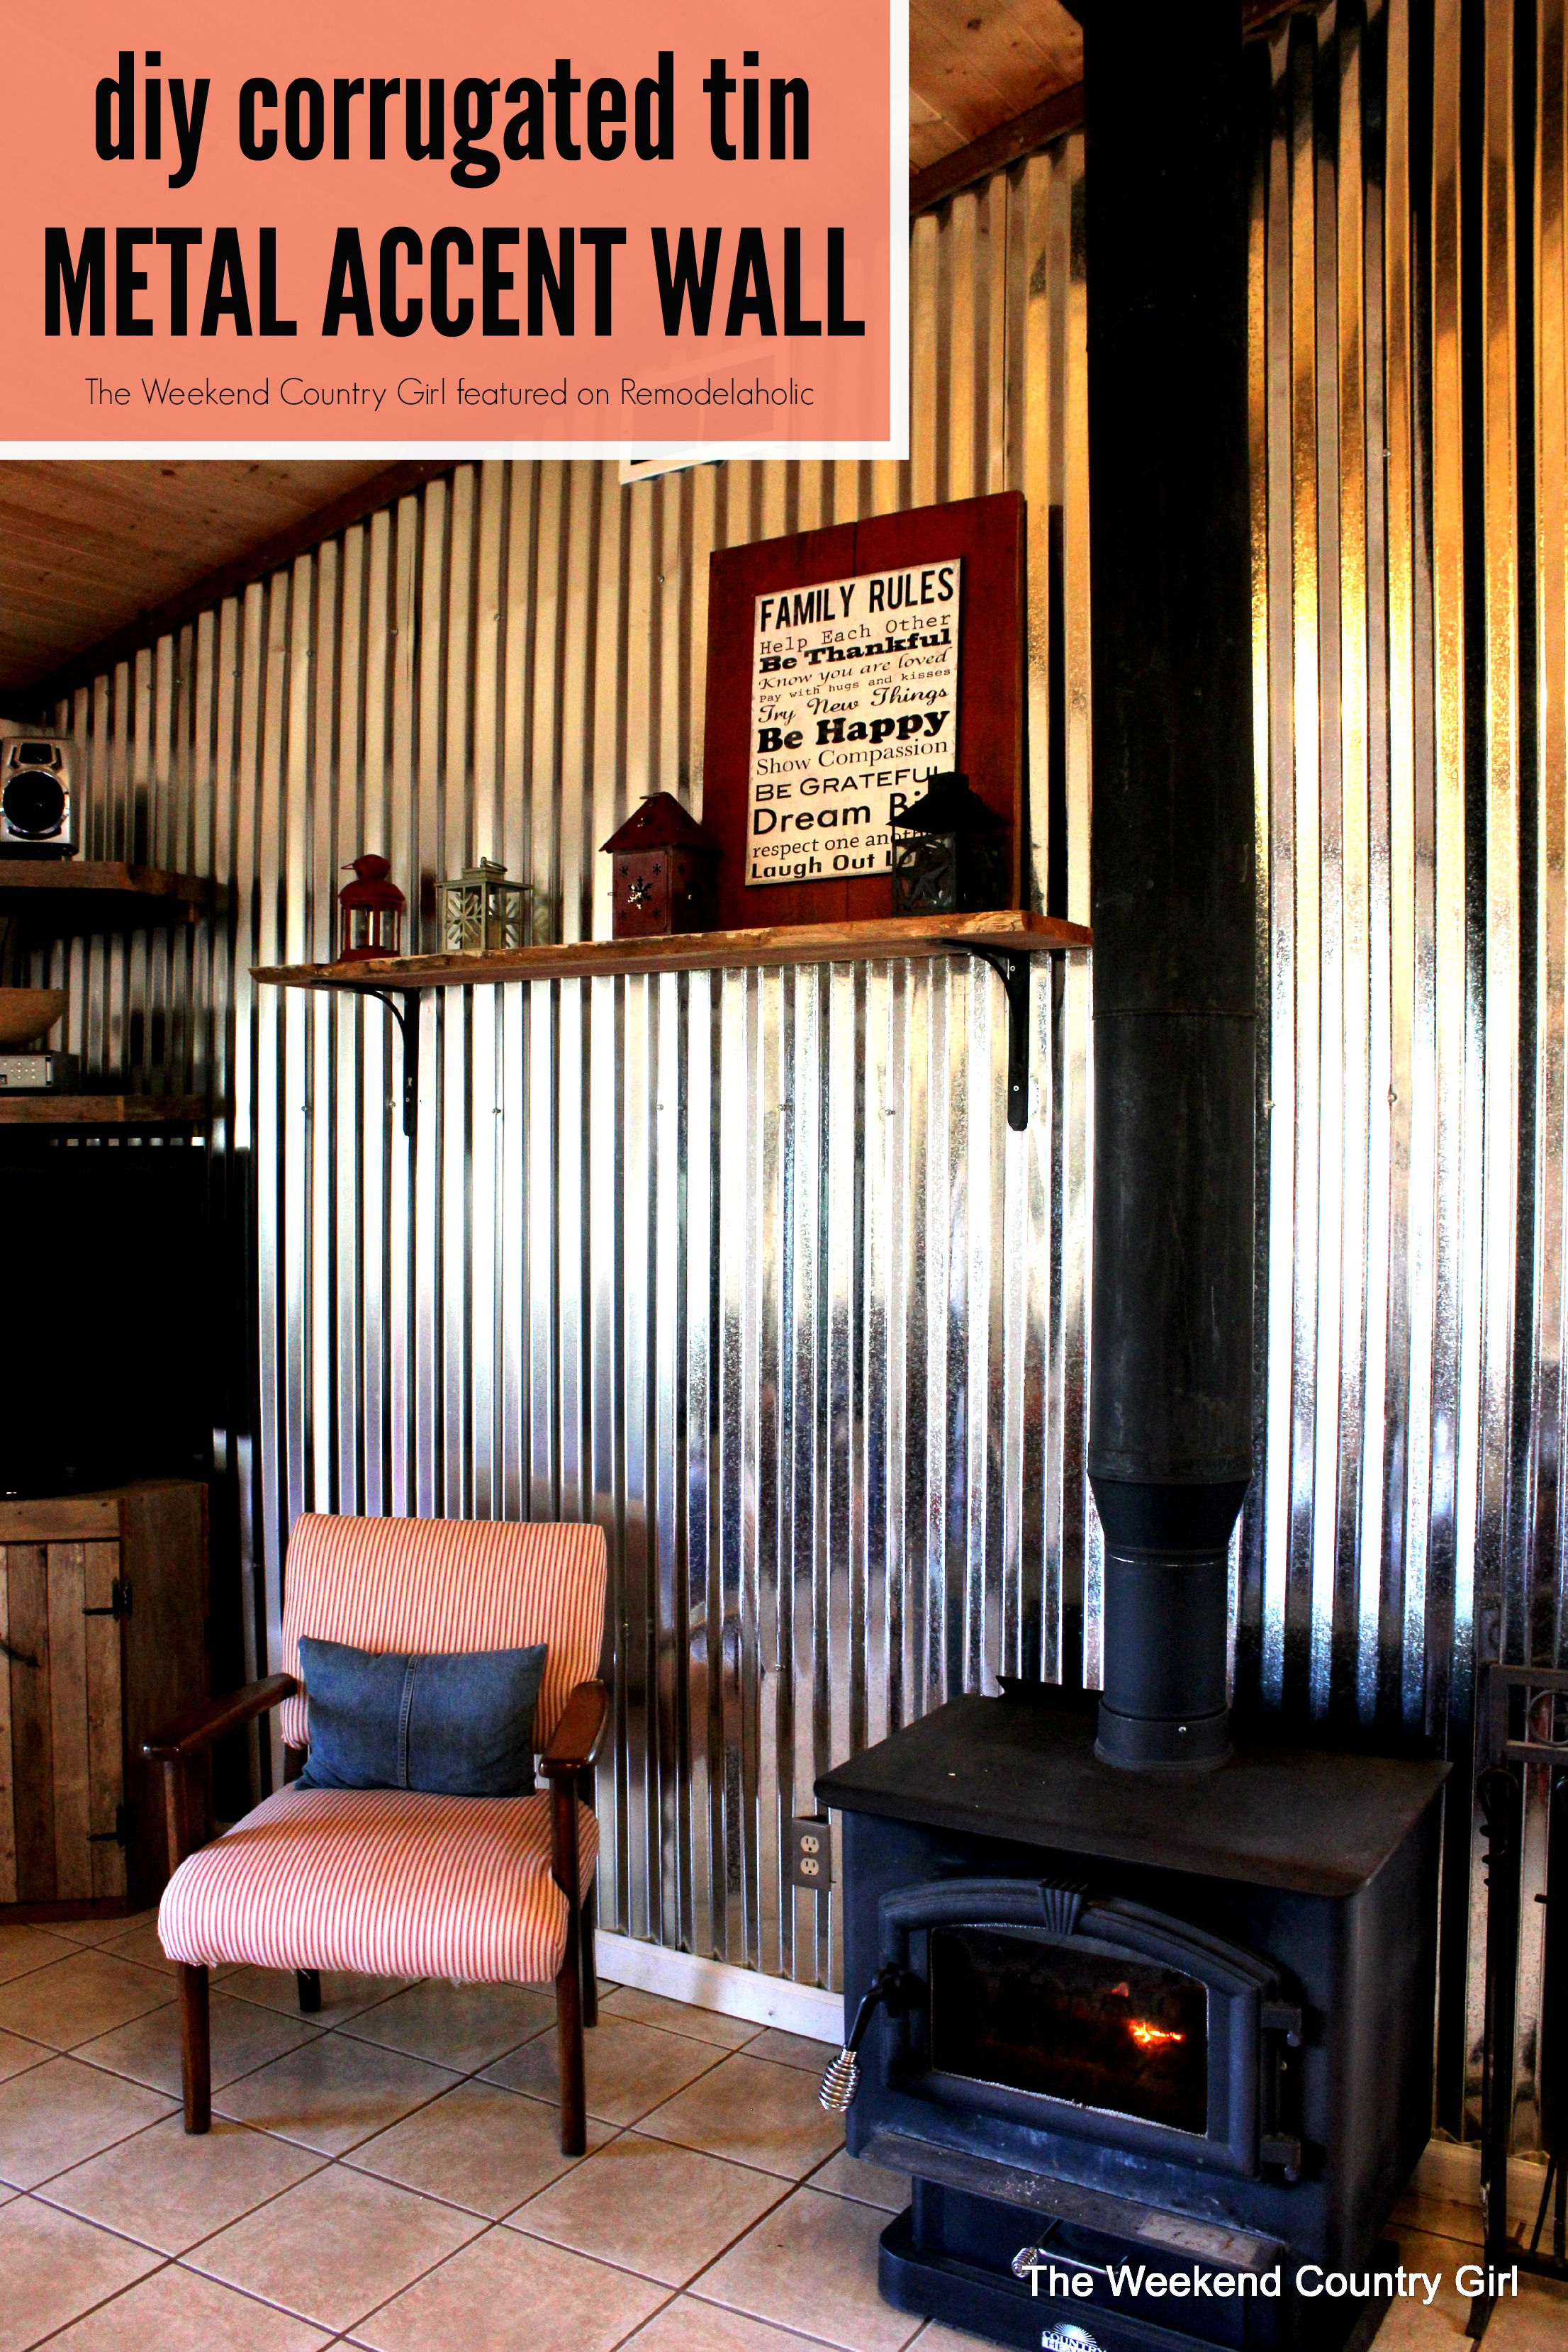 corrugated steel chair rail keekaroo high review remodelaholic diy tin wall tutorial create your own metal sheet accent the weekend country girl featured on